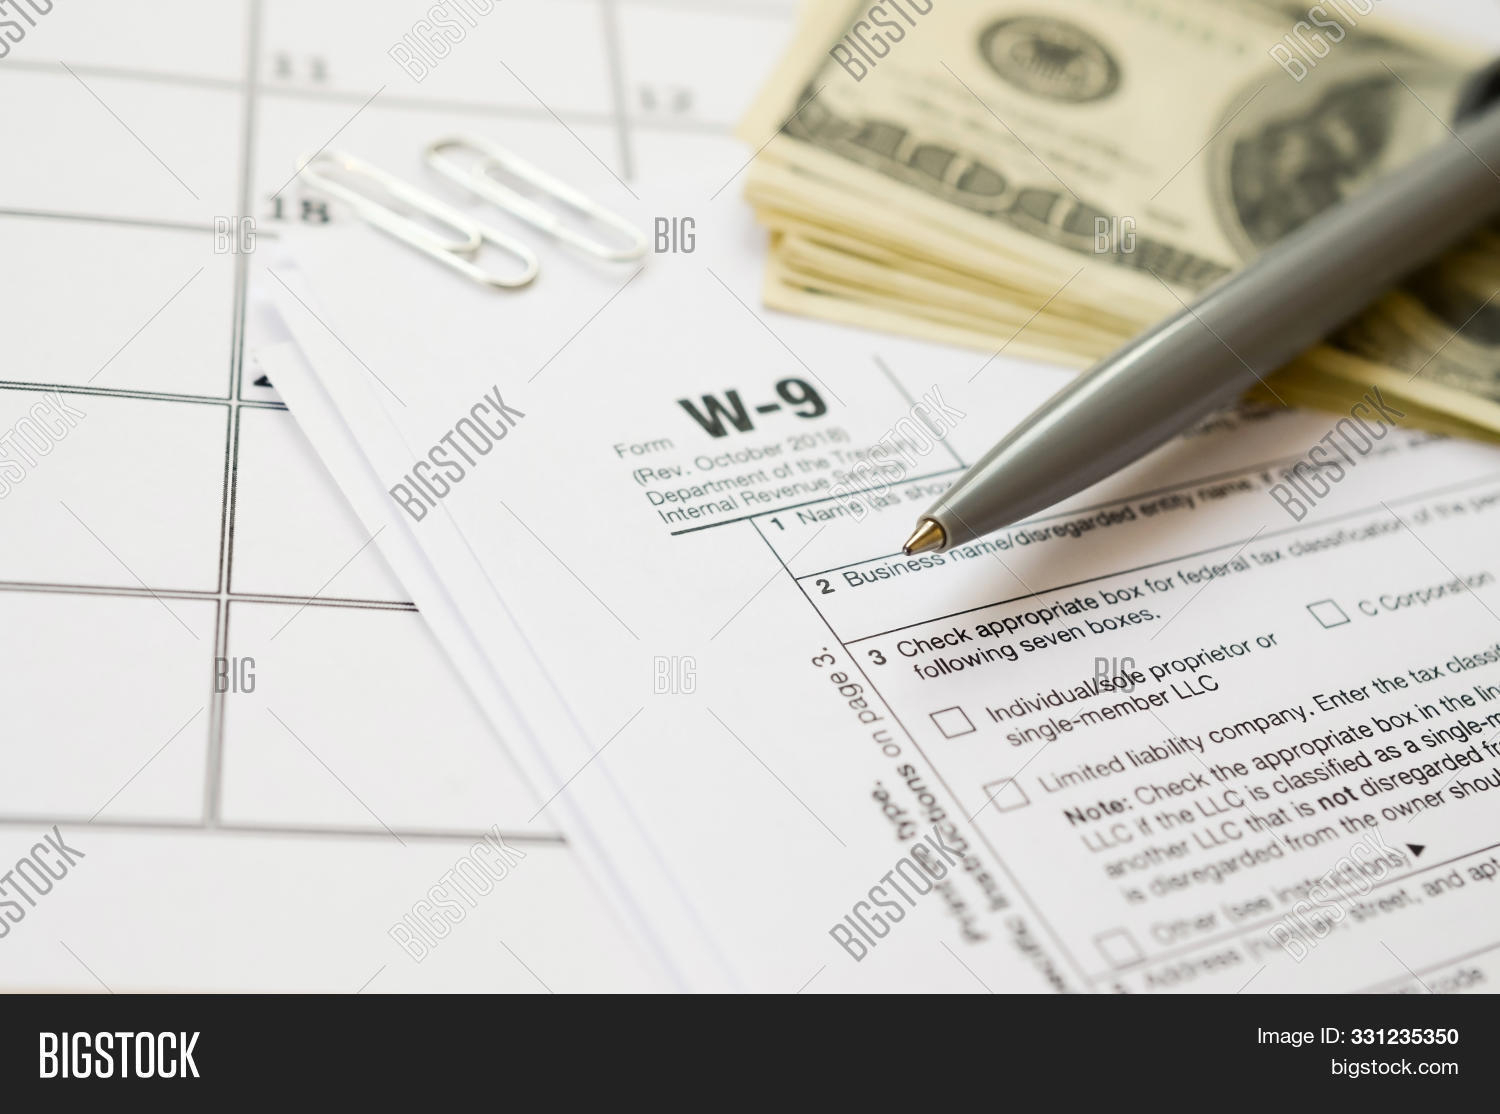 Irs Form W-9 Request Image & Photo (Free Trial) | Bigstock with regard to Free W 9 Blank Form